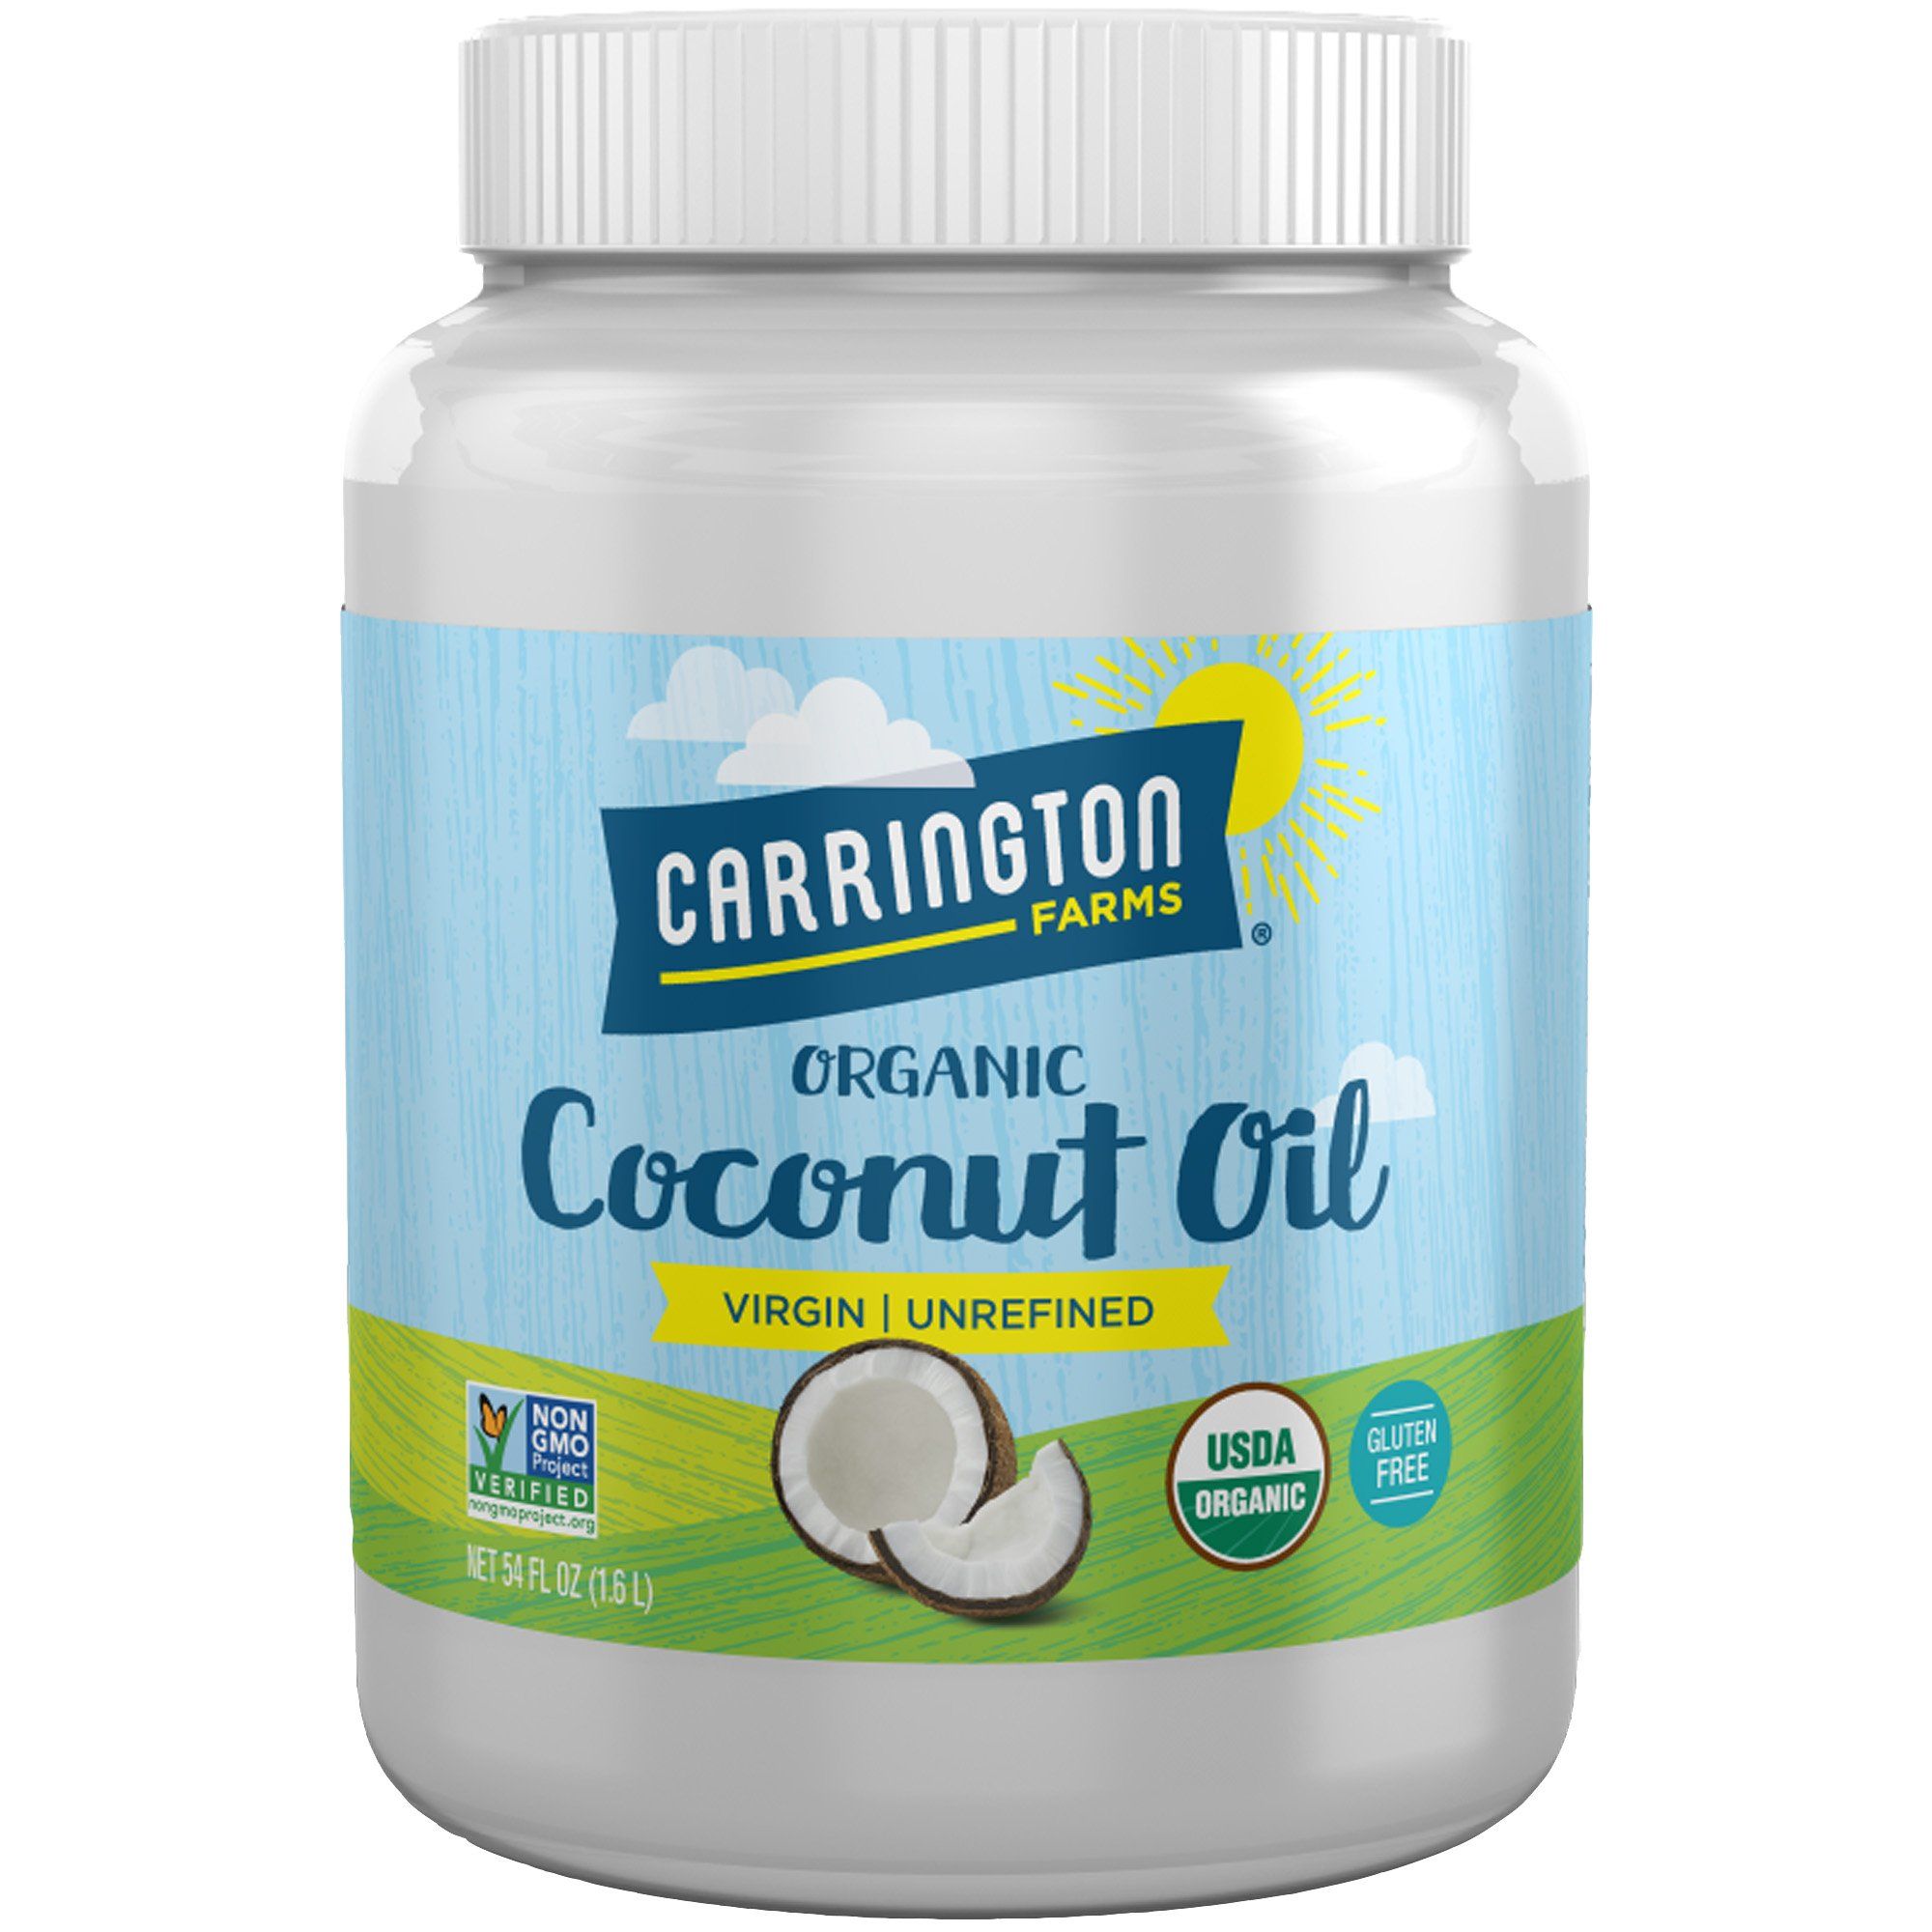 Carrington Farms Gluten Free, Unrefined, Cold Pressed, Virgin Organic Coconut Oil, 54 oz. (Ounce), Coconut Oil For Skin & Hair Care, Cooking, Baking, & Smoothies by Carrington Farms